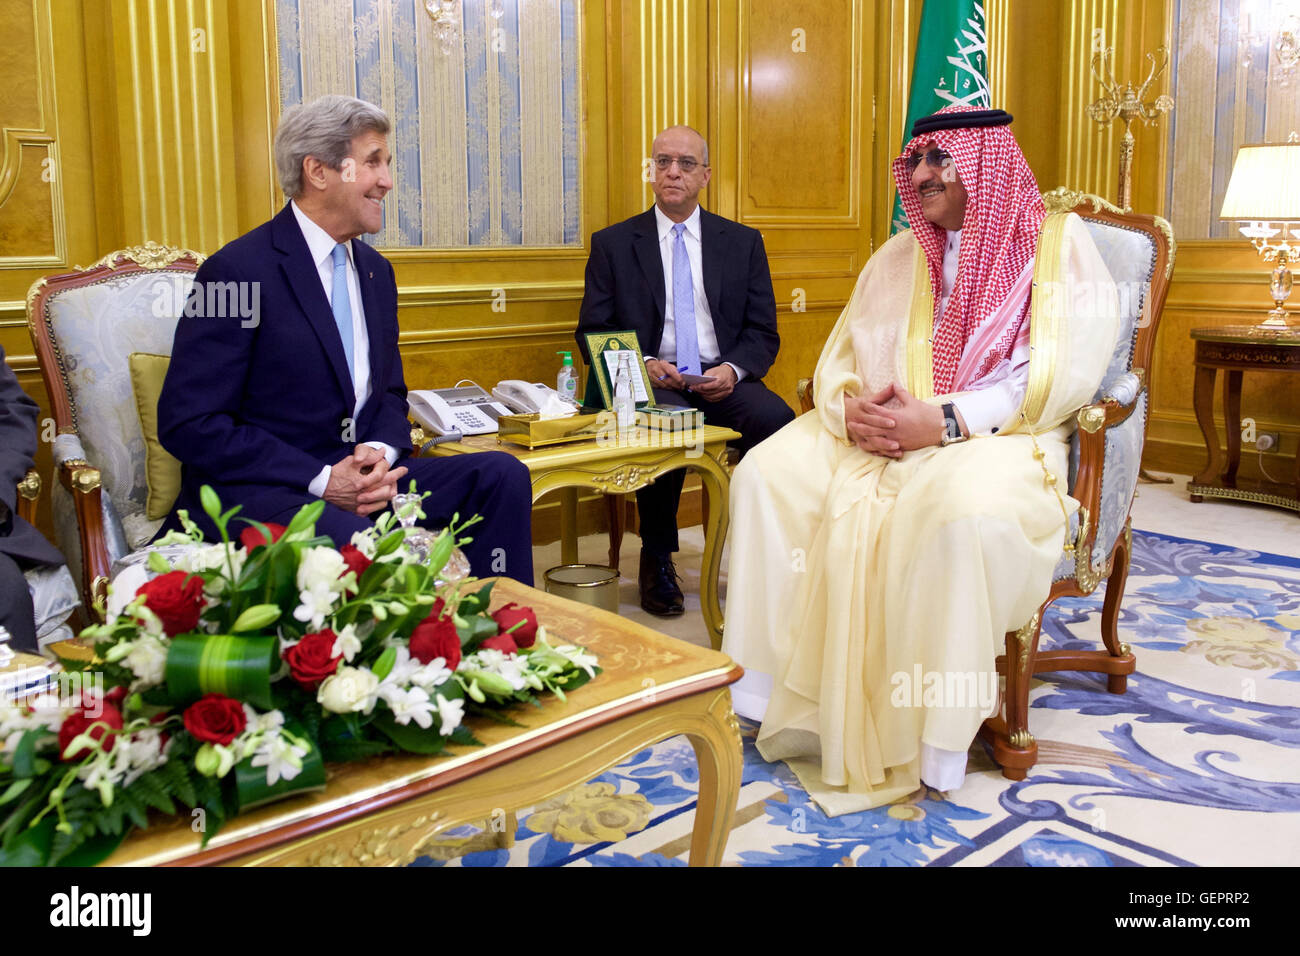 Secretary John Kerry Sits With Crown Prince Muhammad bin Nayef - Stock Image